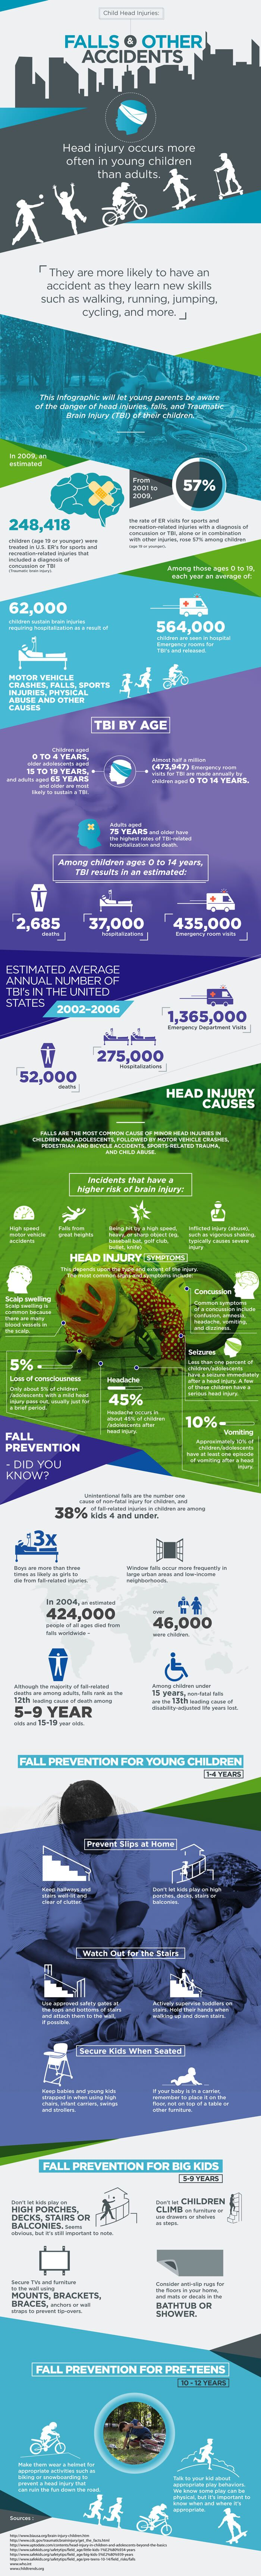 Child Head Injury #Infographic #Accidents #Children